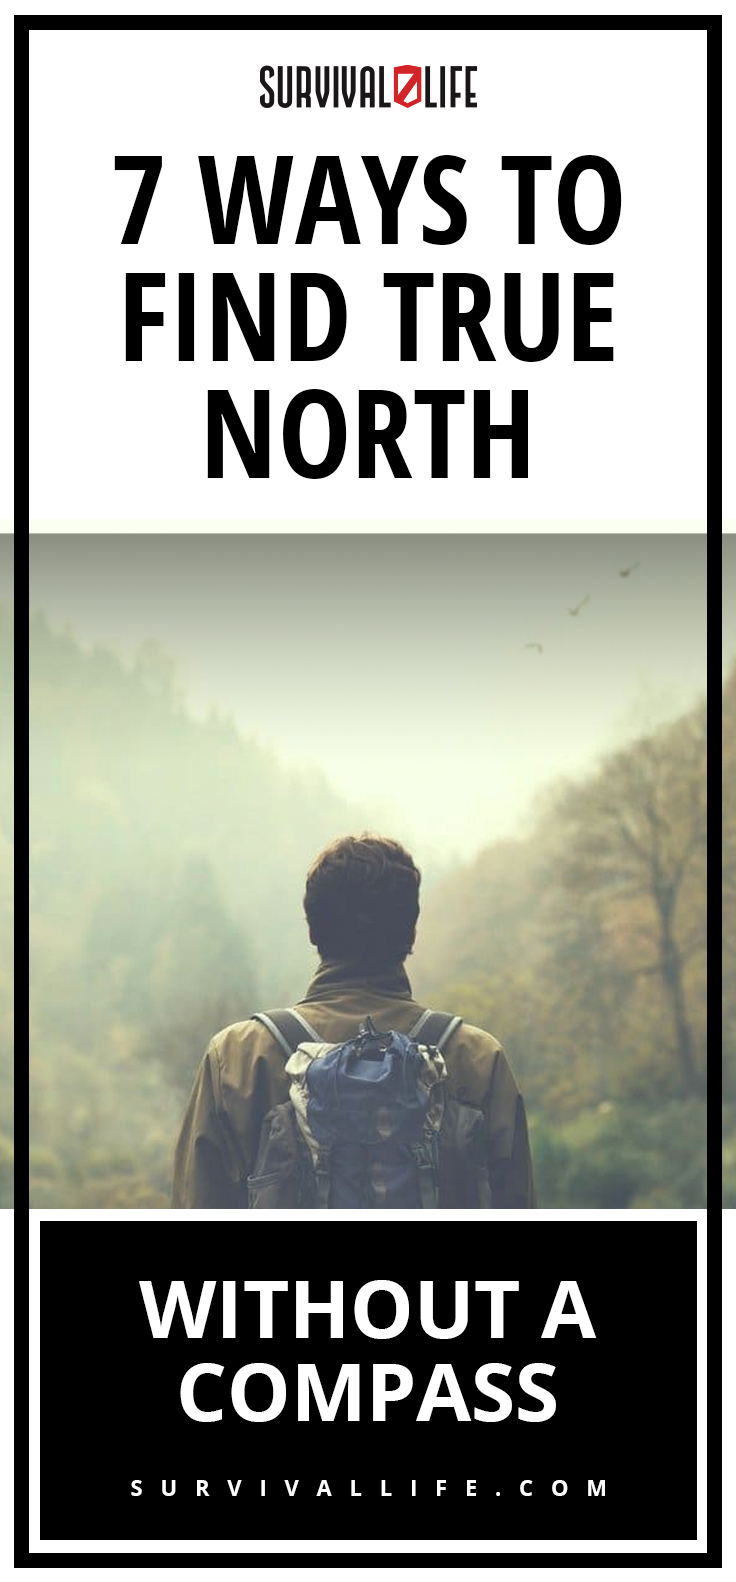 Placard | Ways To Find True North Without A Compass